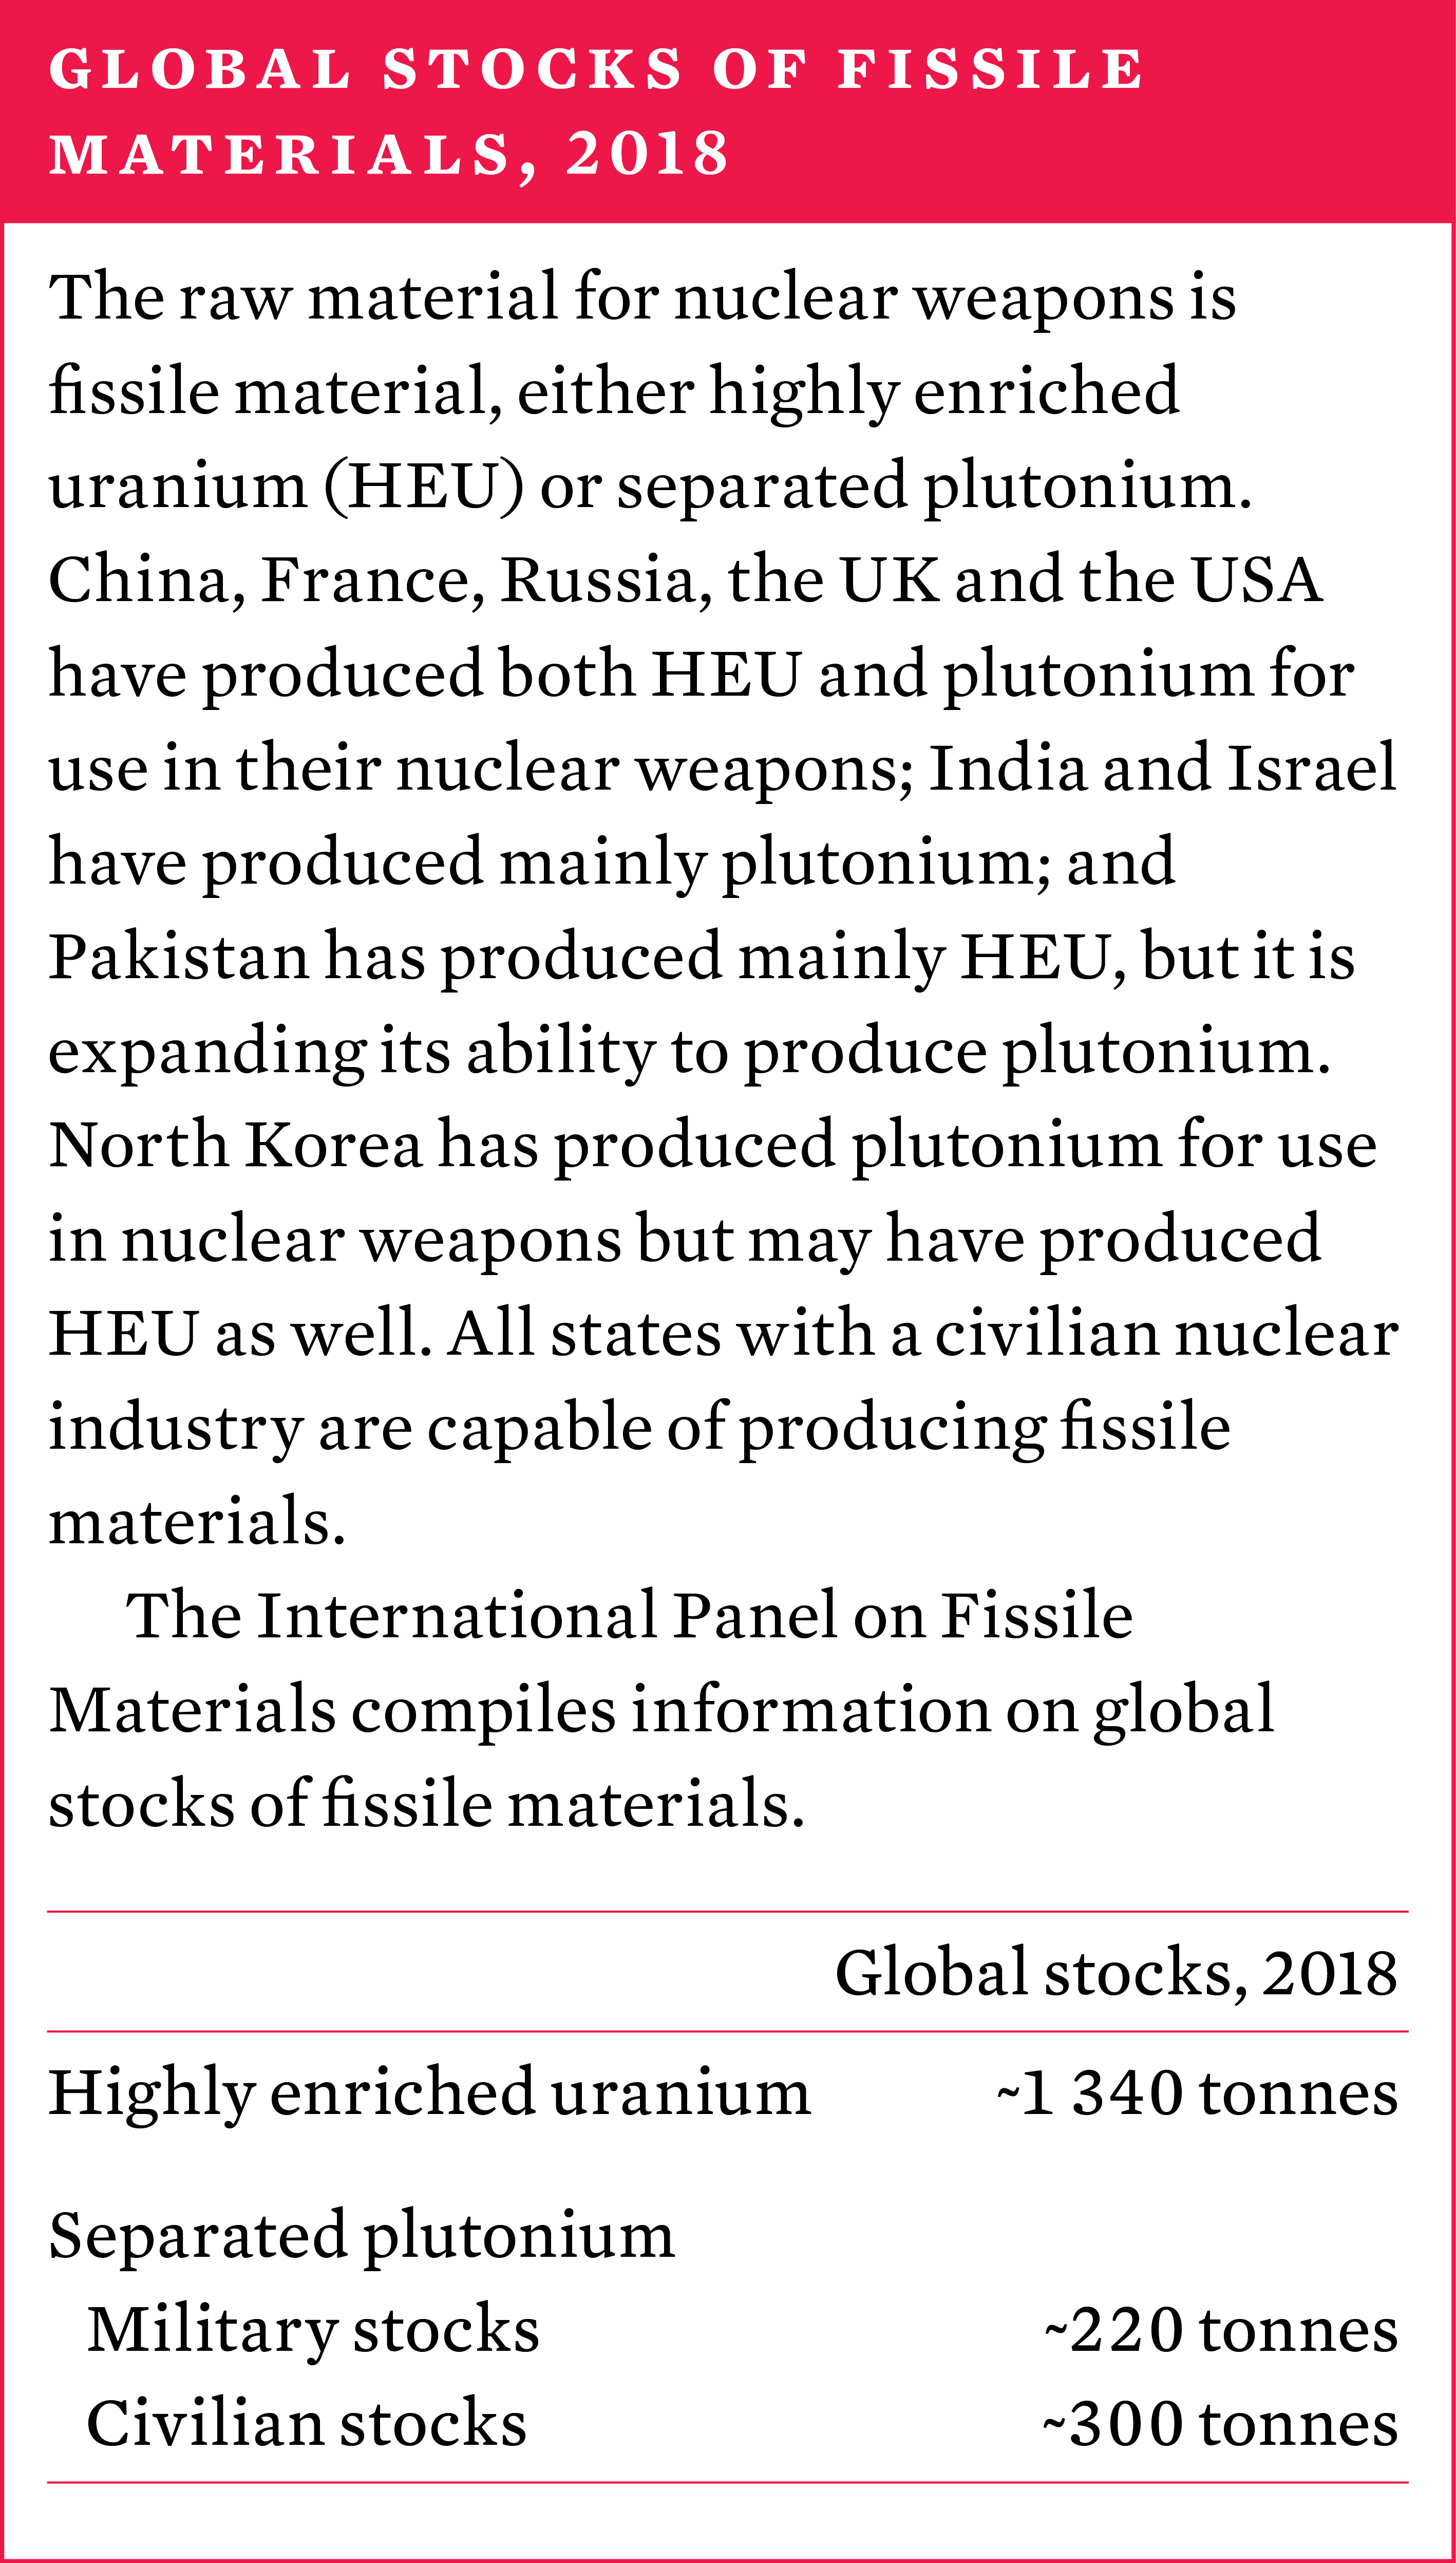 Global stocks of fissile materials 2018